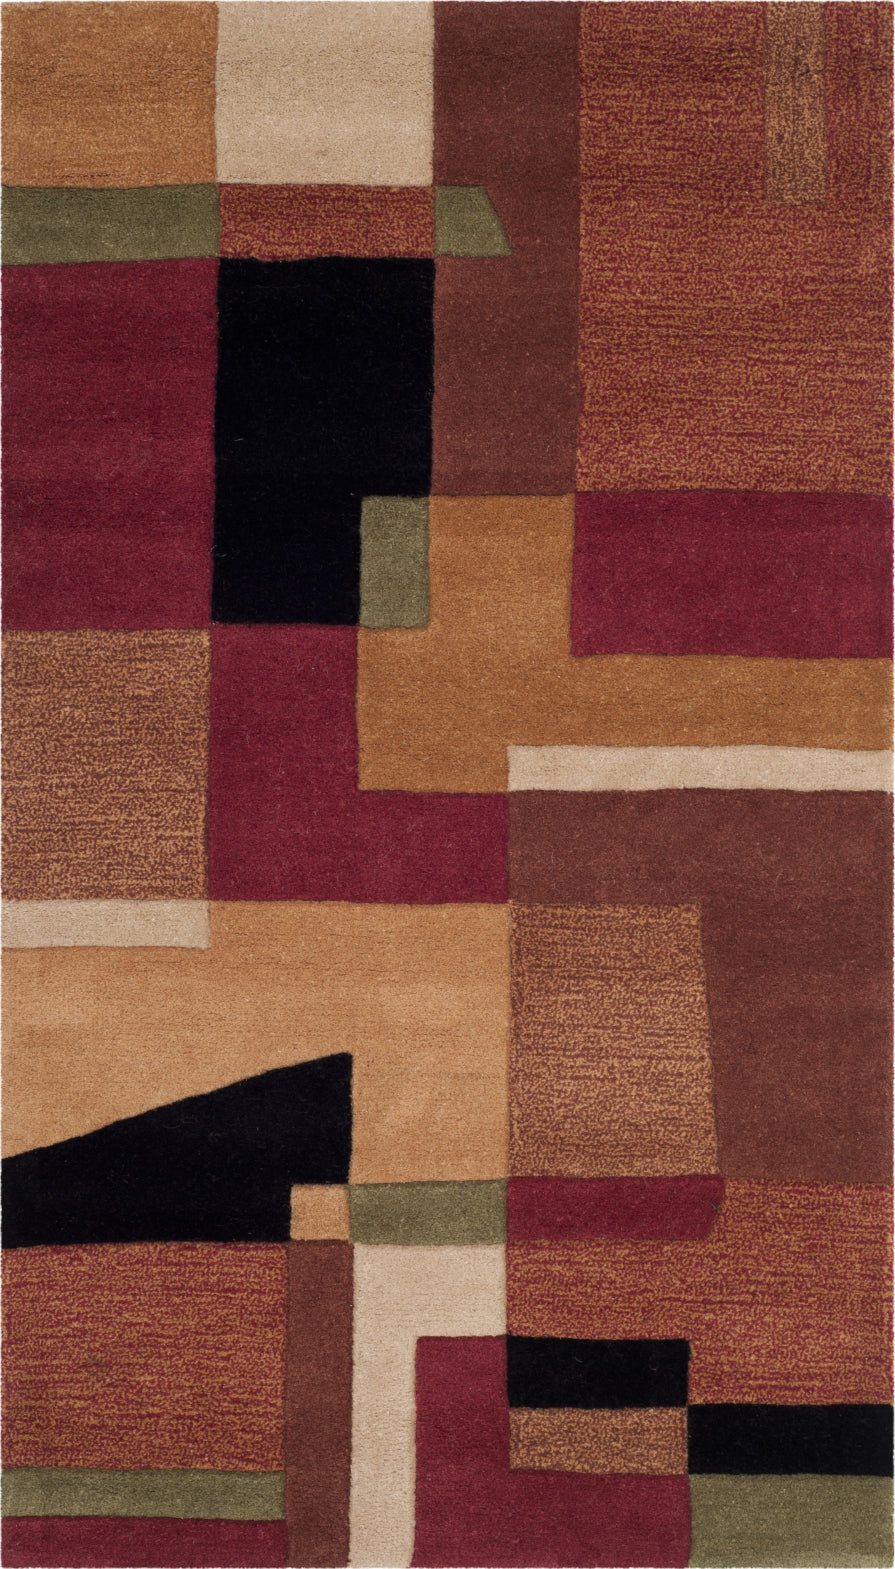 Safavieh Rodeo Drive Rd868 Multi Area Rug main image